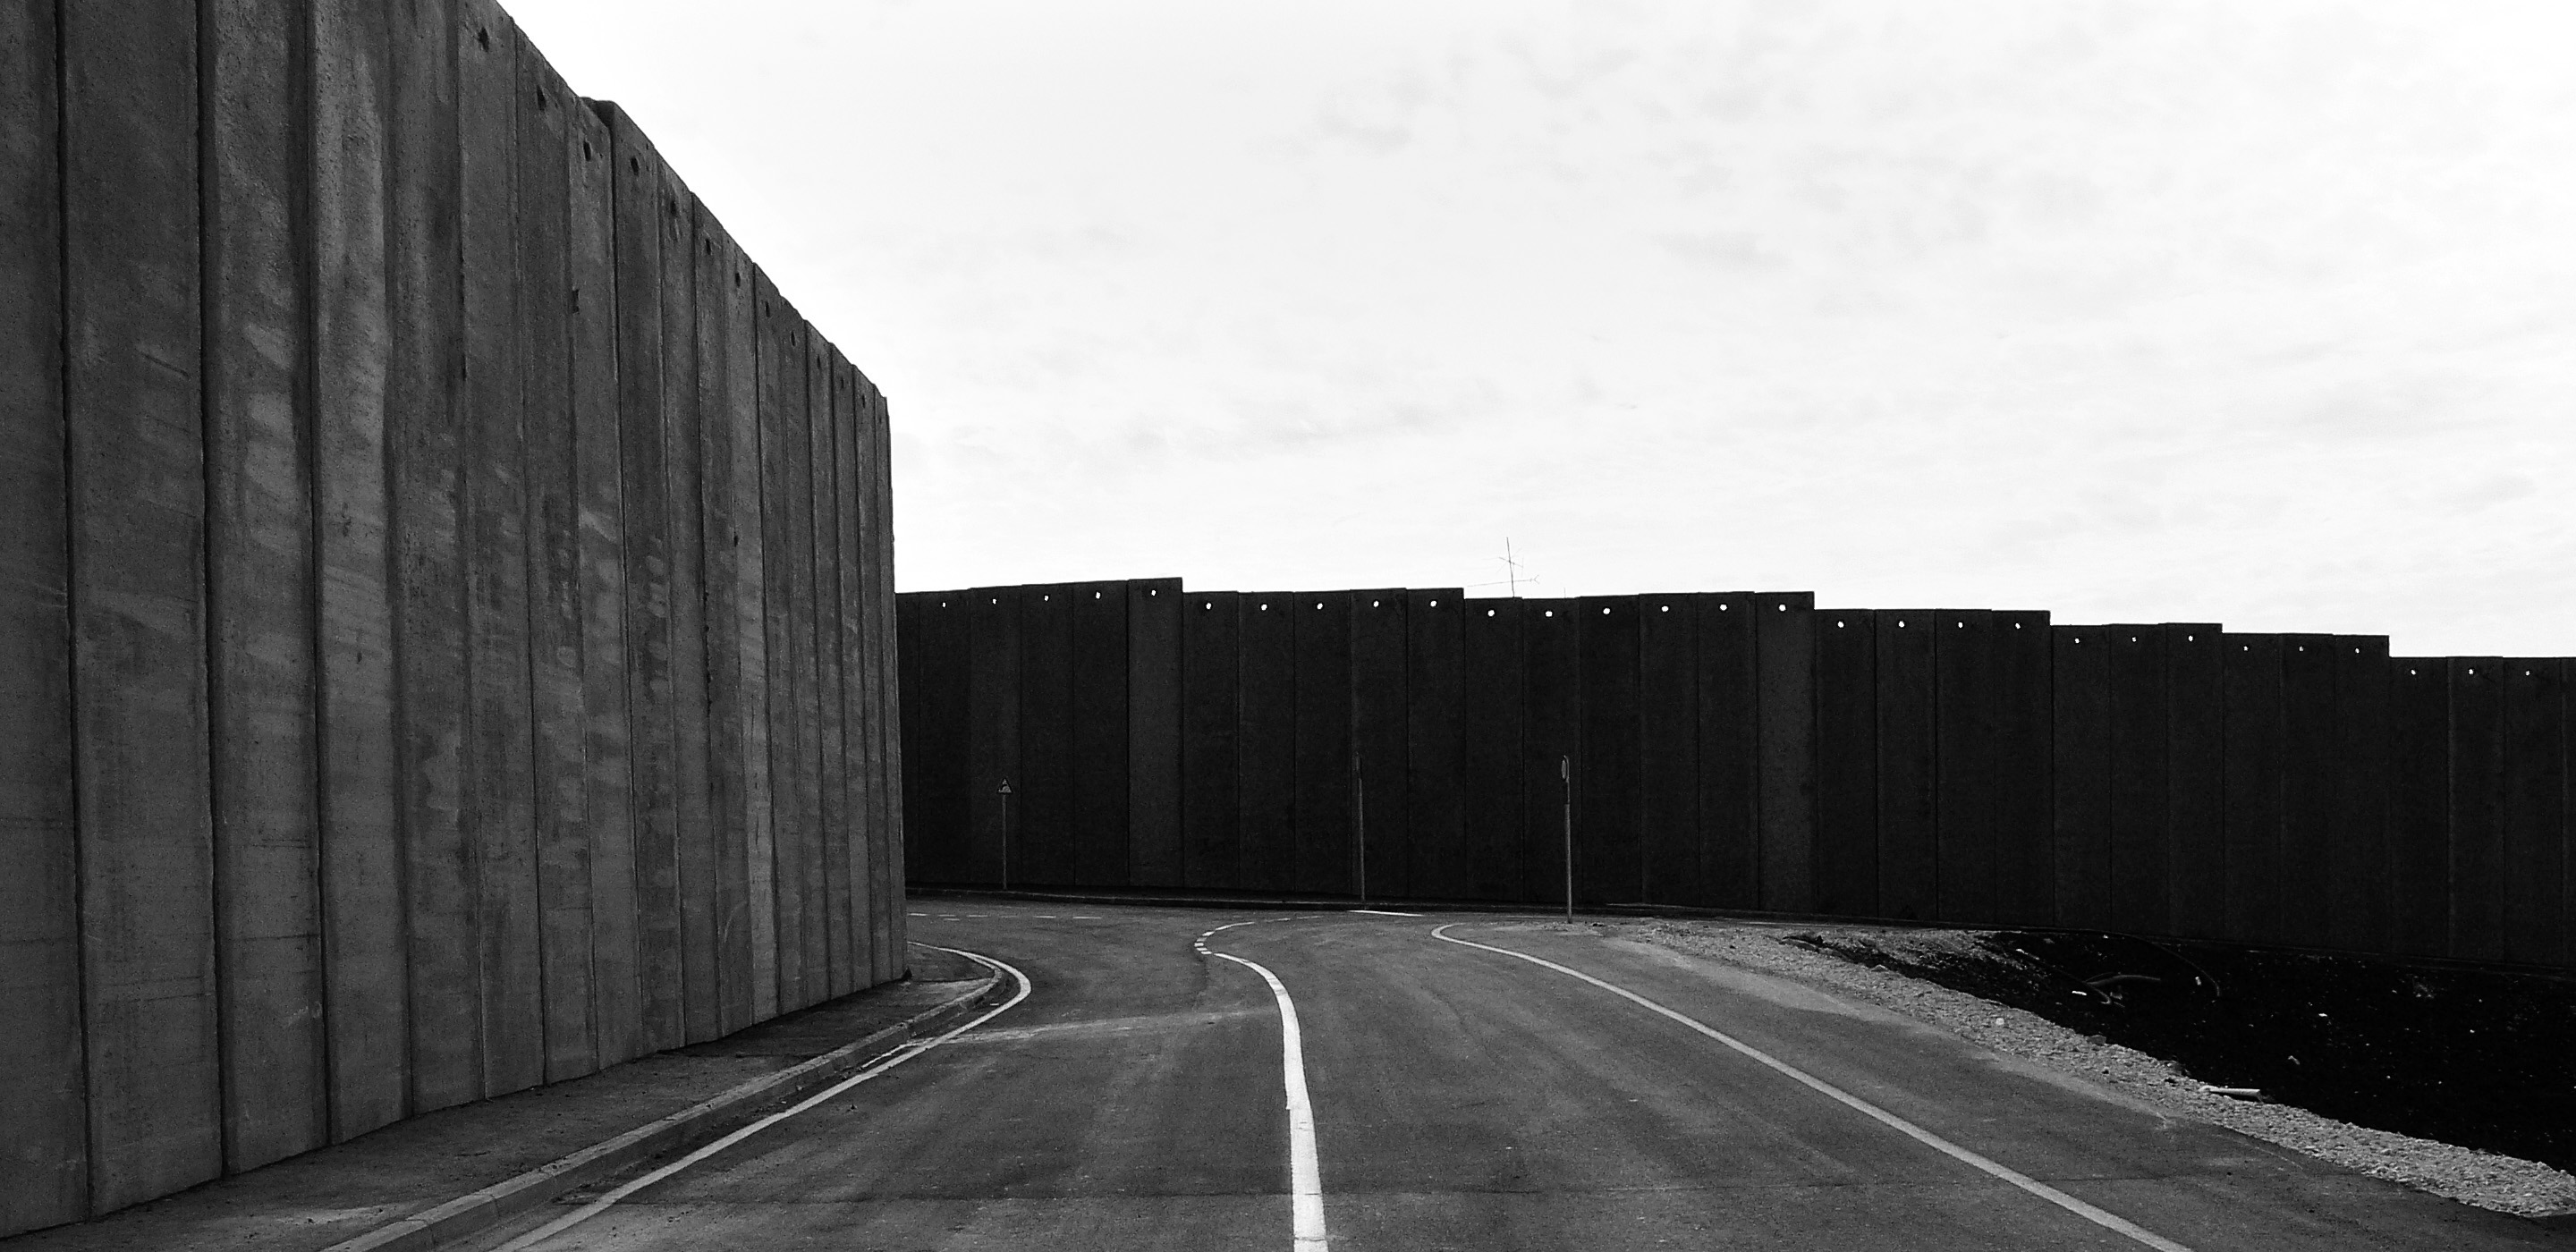 High concrete walls enclose a road